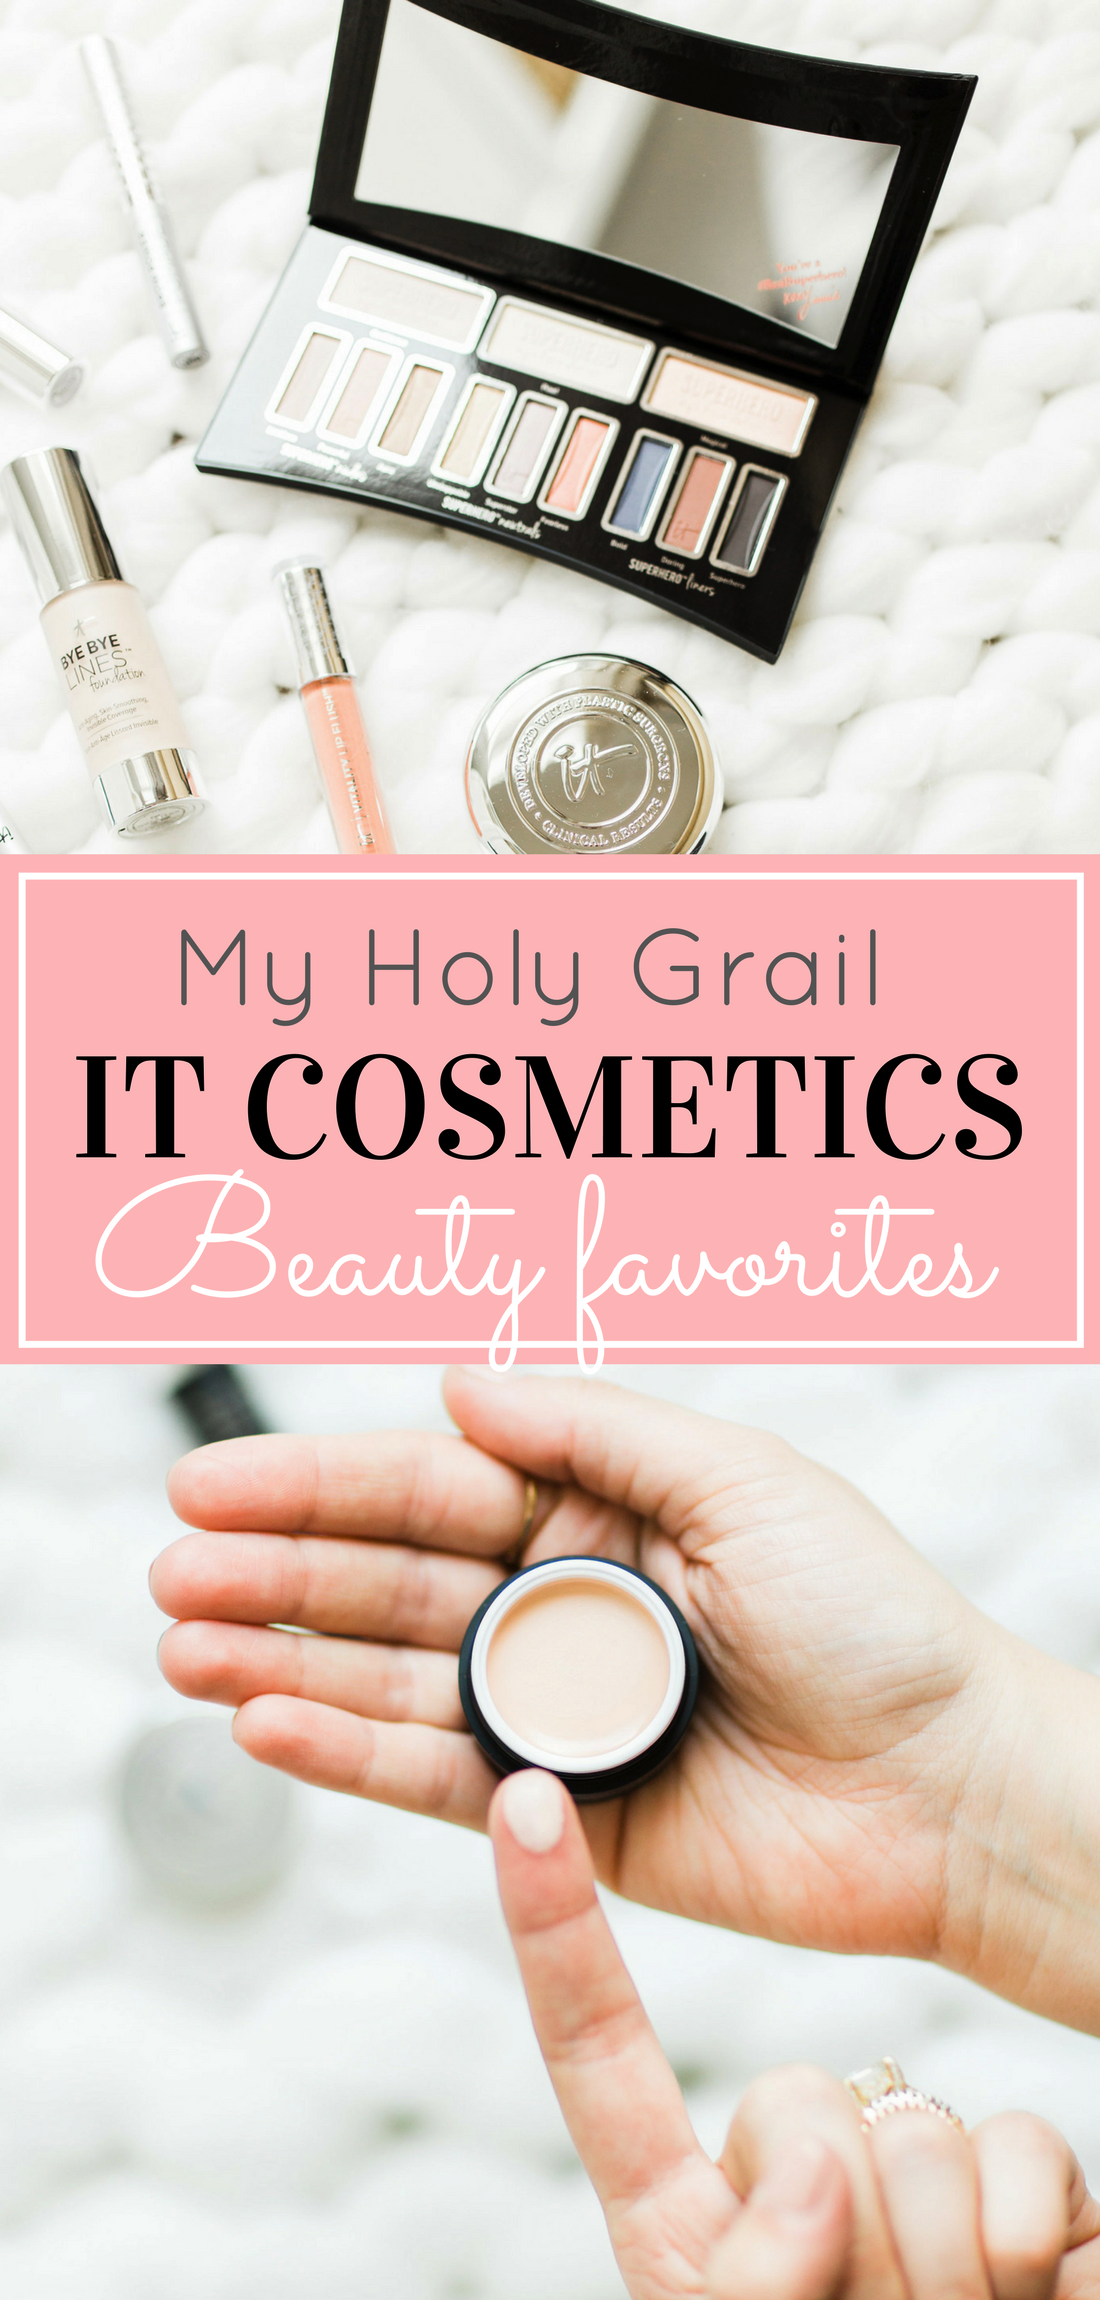 Beauty blogger Lexi of Glitter, Inc. shares her must-have IT Cosmetics makeup and skincare products. (Seriously, these are game-changing favorites!) | glitterinc.com | @glitterinc - The IT Cosmetics Products I Swear By by popular North Carolina style blogger, Glitter, Inc.